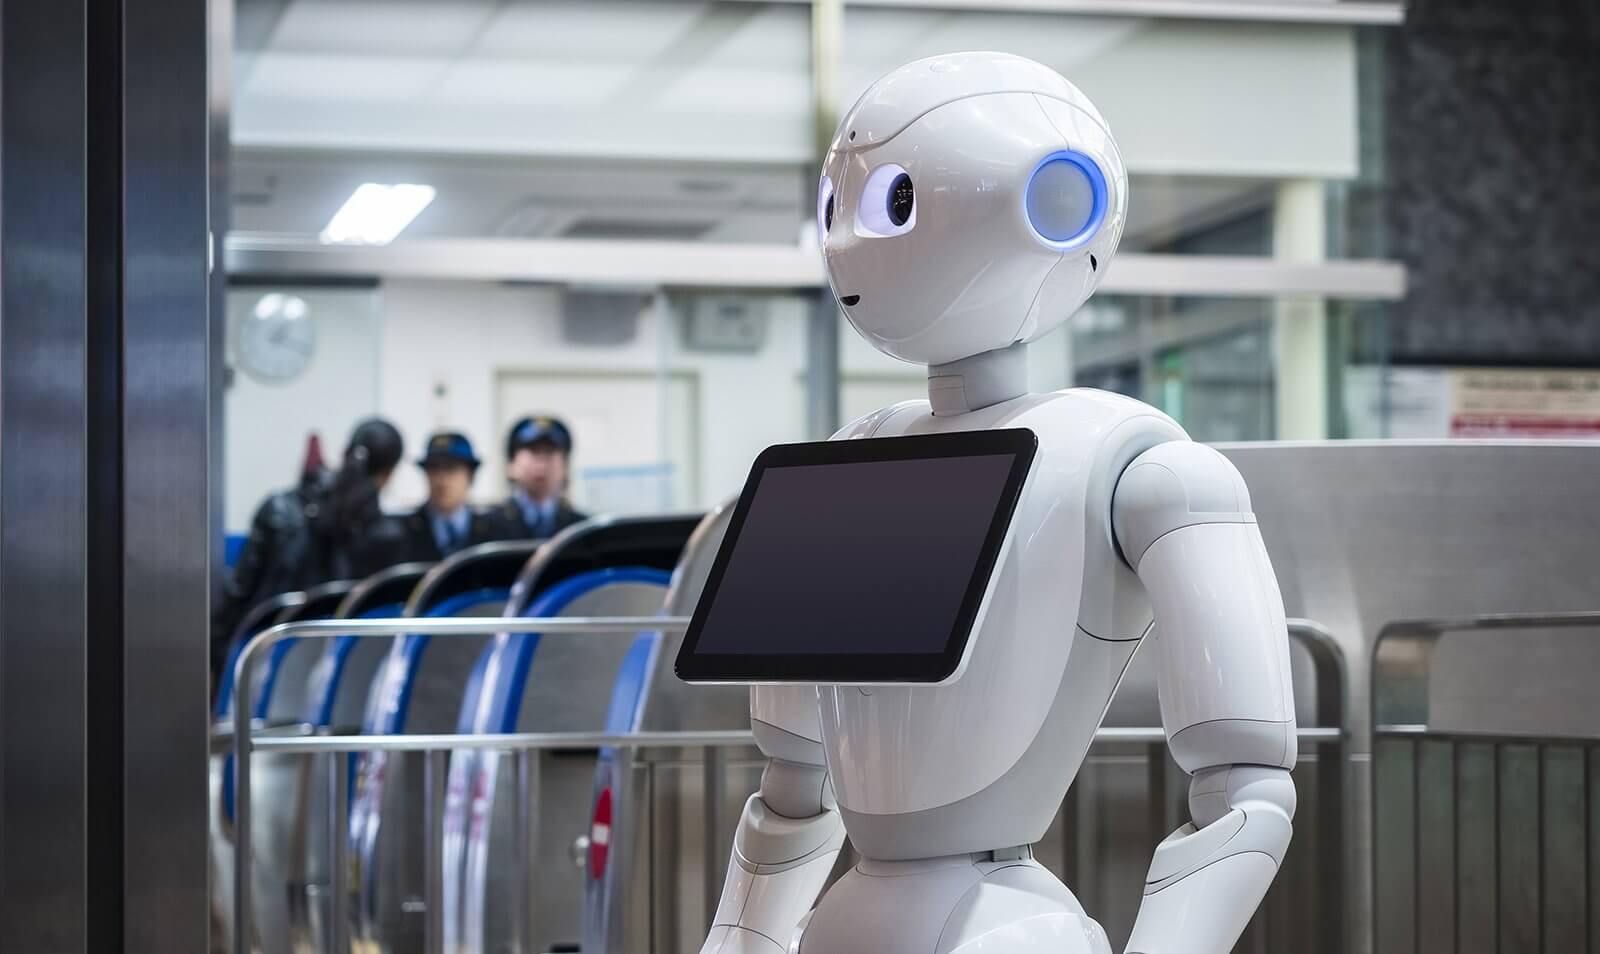 Will AI-powered robots really steal my job?